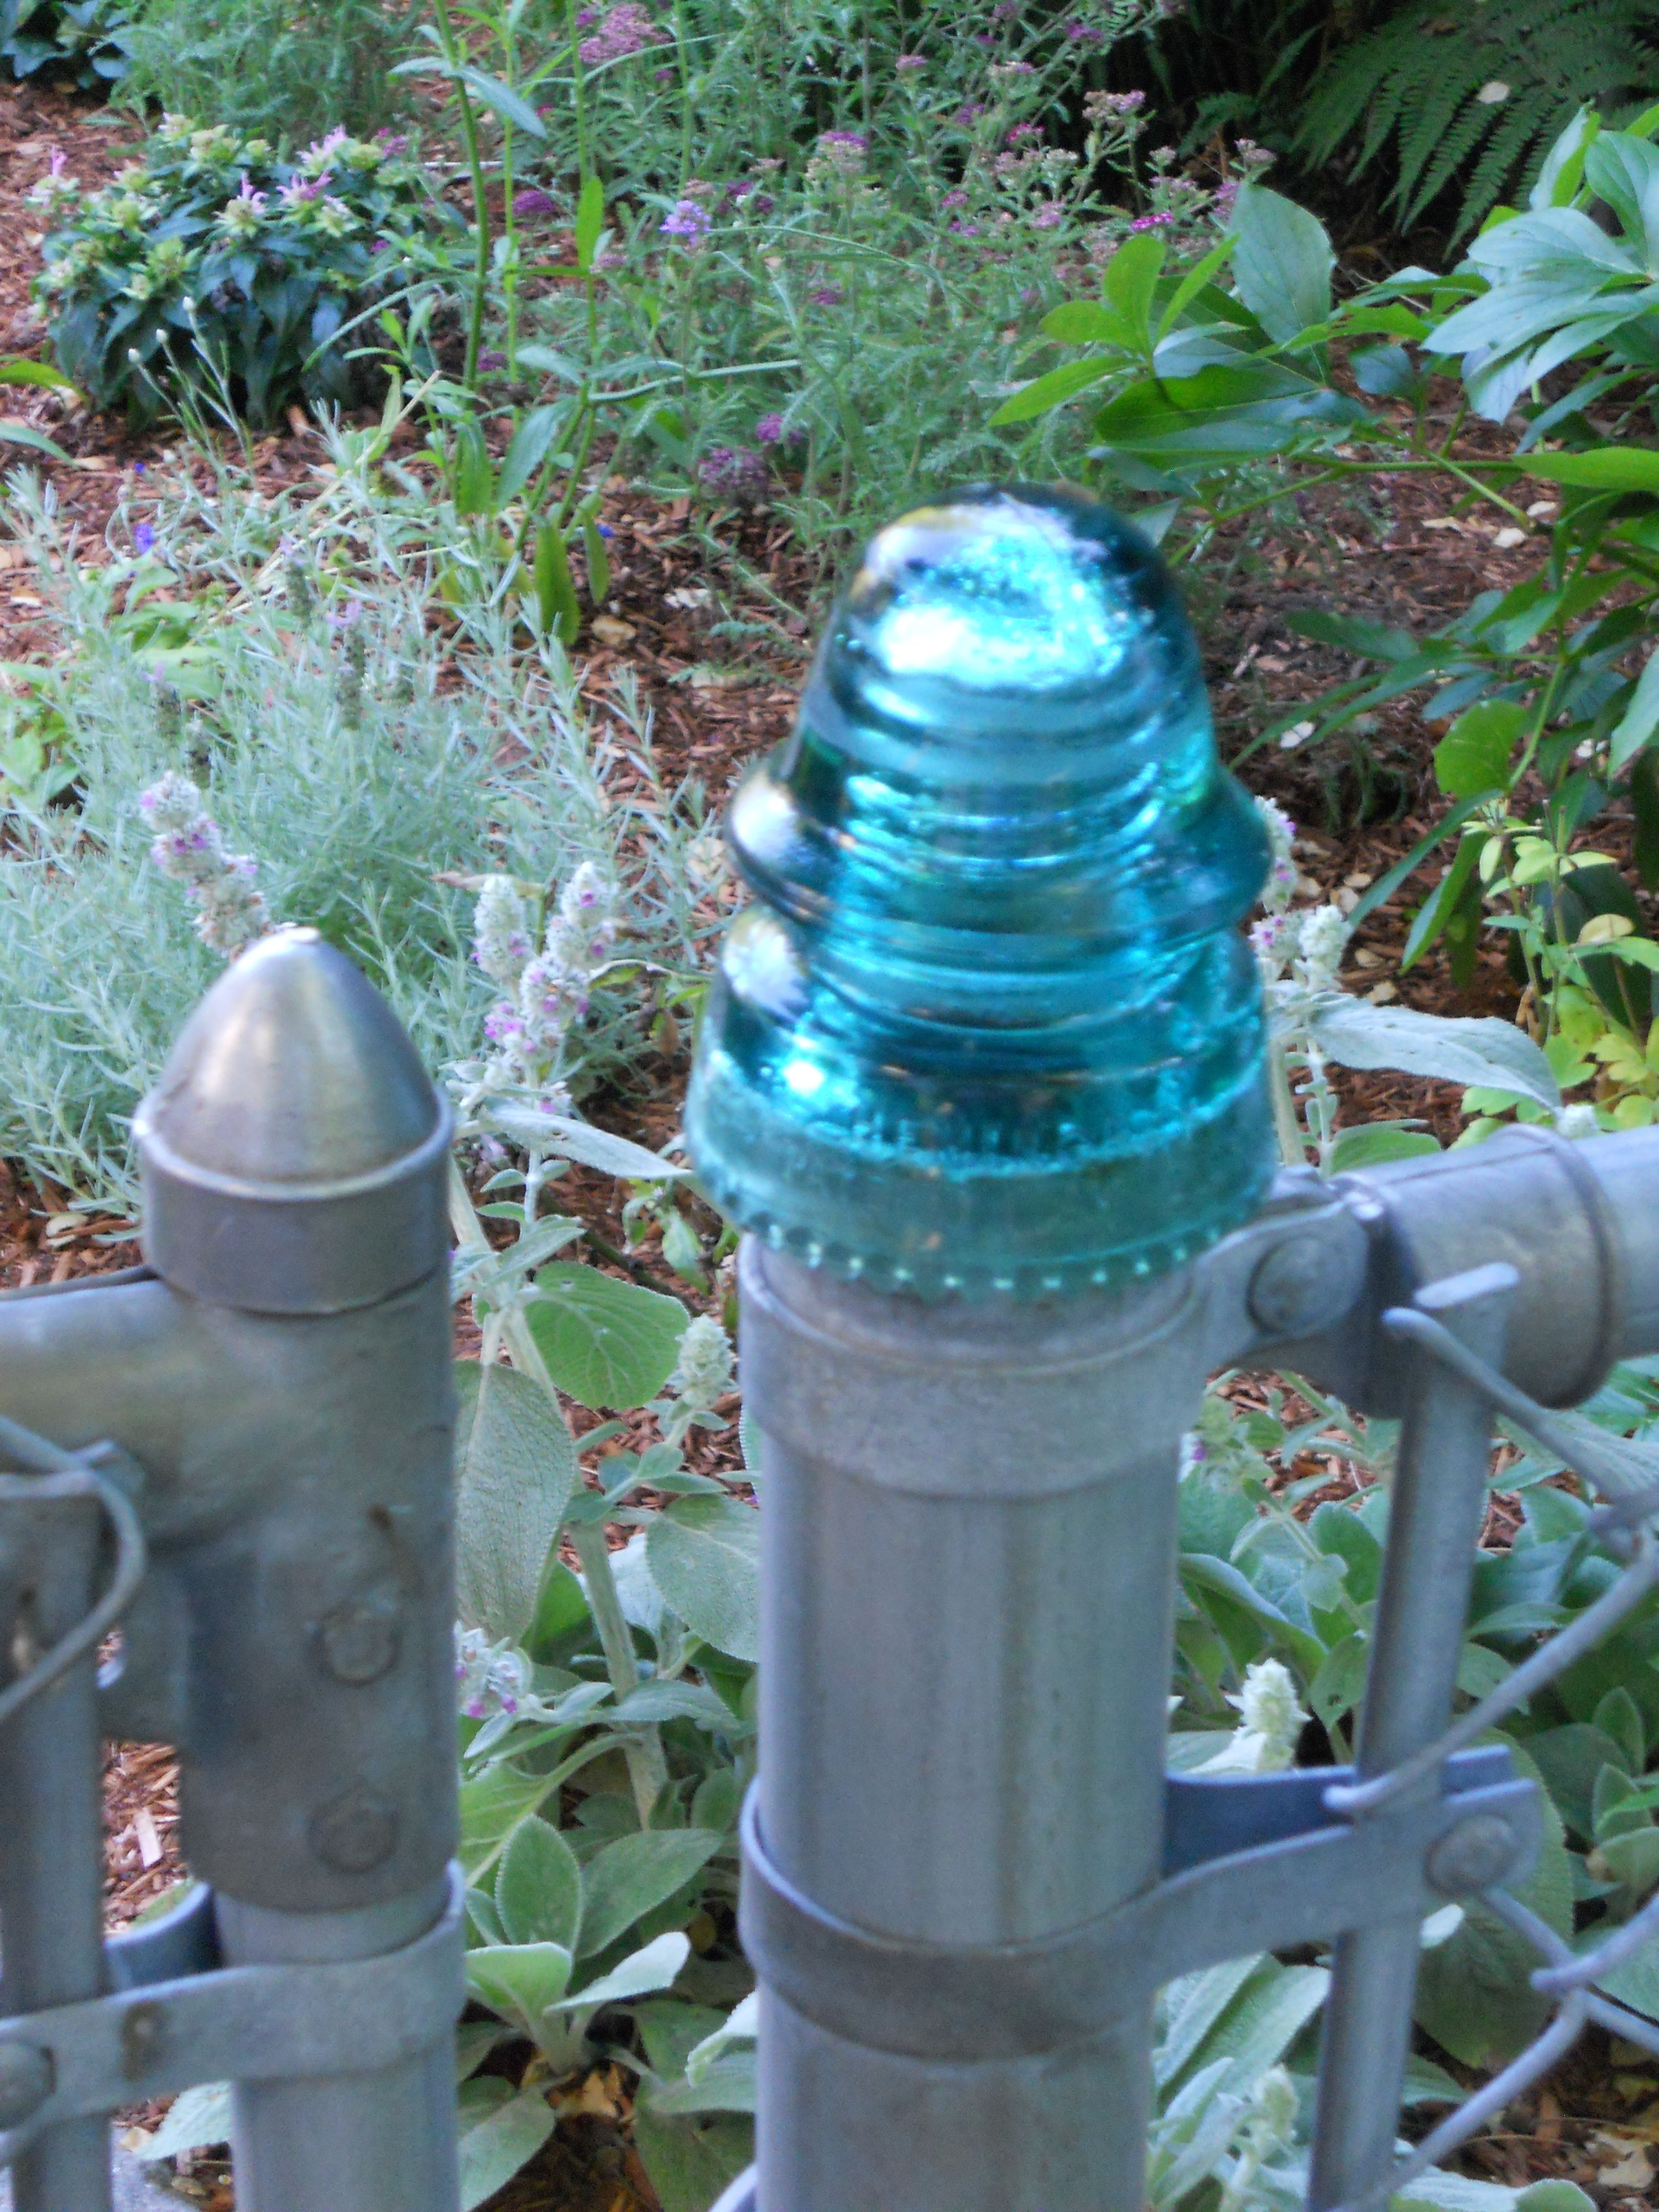 Finally Figured Out What To Do With My Collection Of Glass Insulators They Work Perfectly As Fence Post Finial Glass Insulators Insulation Vintage Gardening